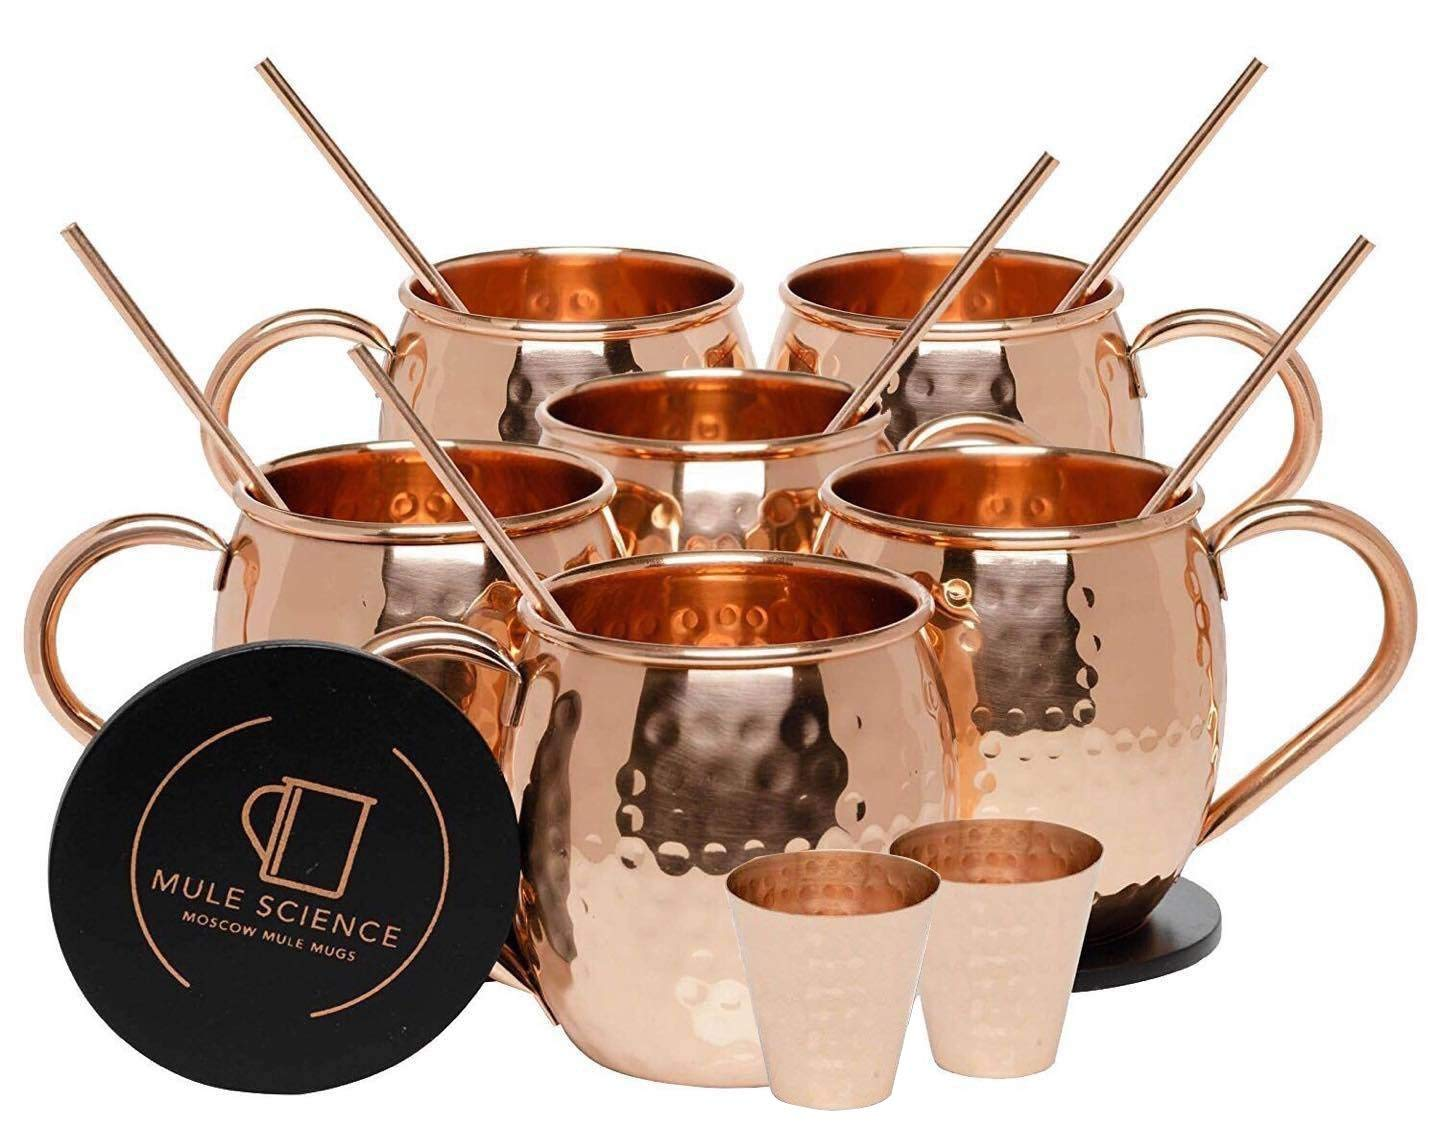 Deco 89 CO001 18 Ounce Drinking Mug, Set of 4 Moscow Mule Hammered Copper, by Deco 89